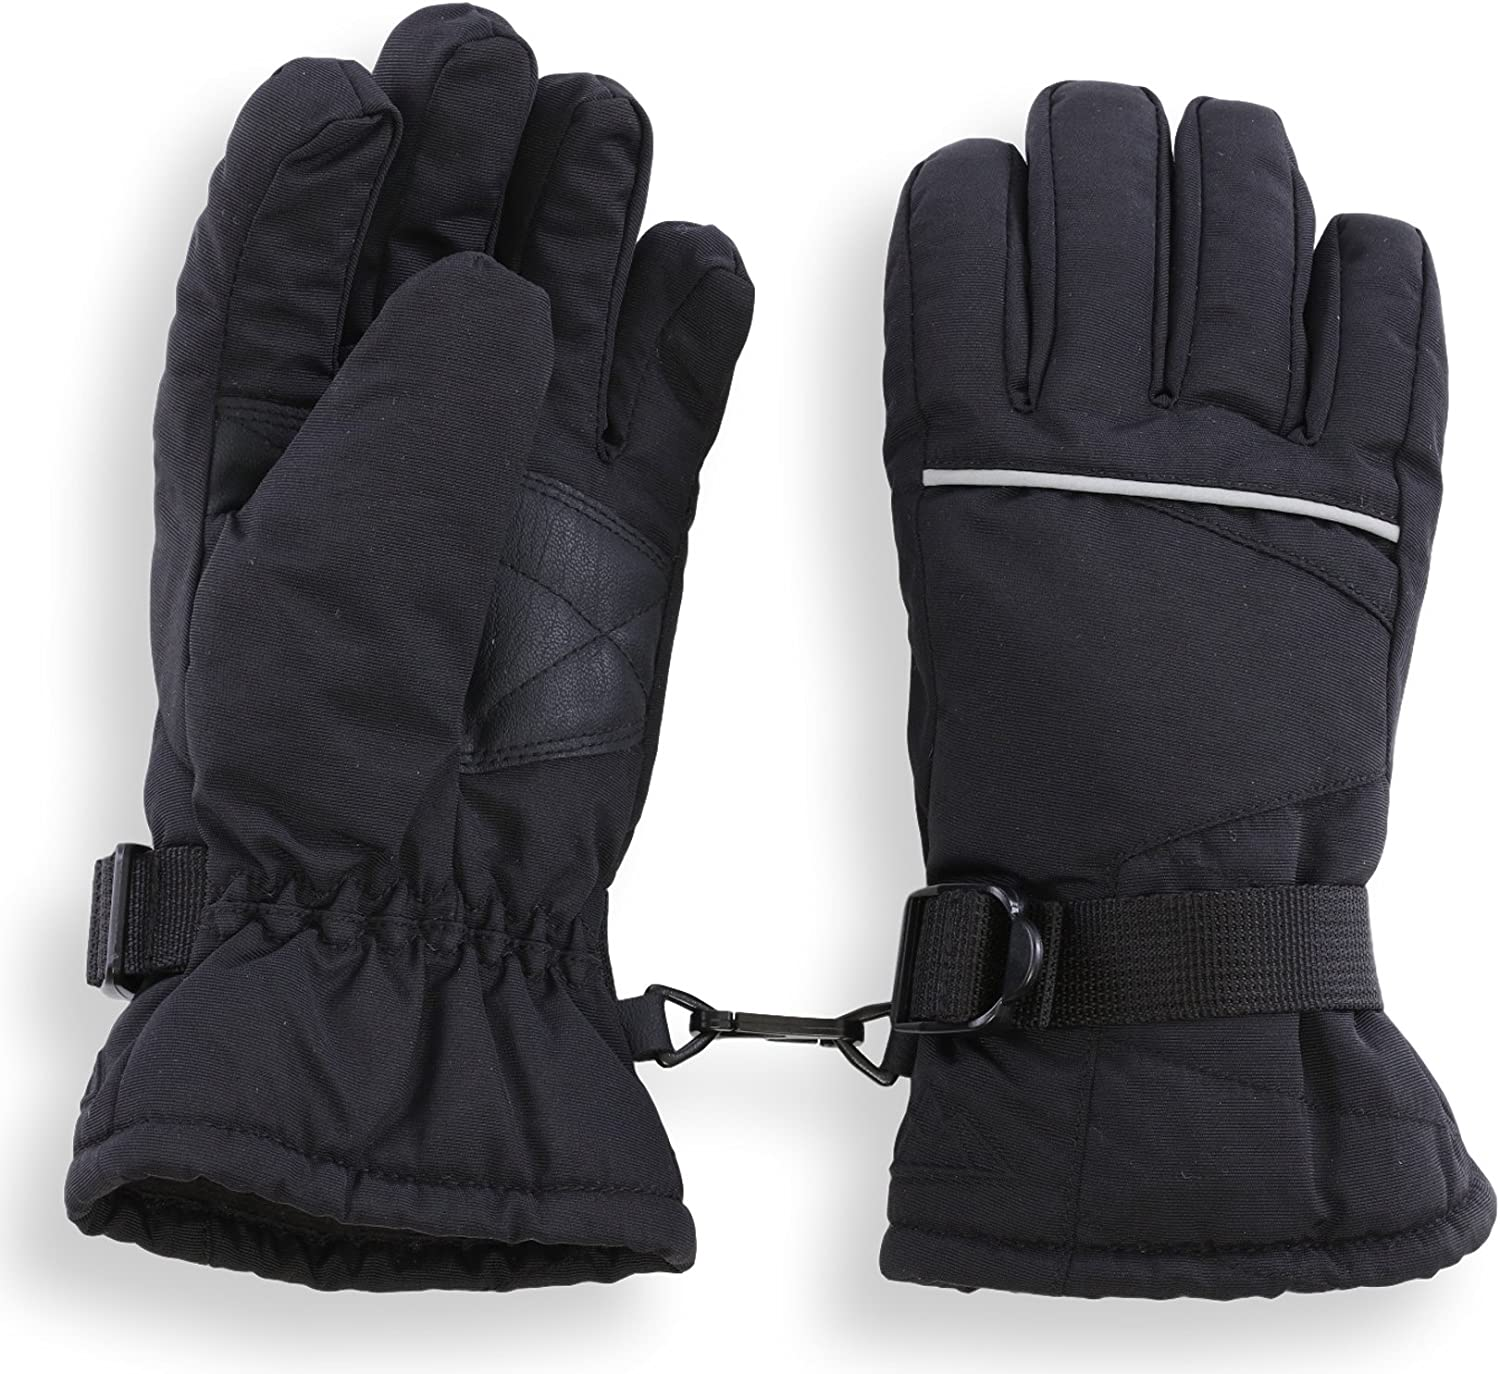 Kids Winter Gloves Snow /& Ski Waterproof Gloves for Boys Skiing /& Snowboarding Windproof Thermal Shell /& Synthetic Leather Palm Girls Designed for Cold Weather Outdoor Play Toddler /& Youth